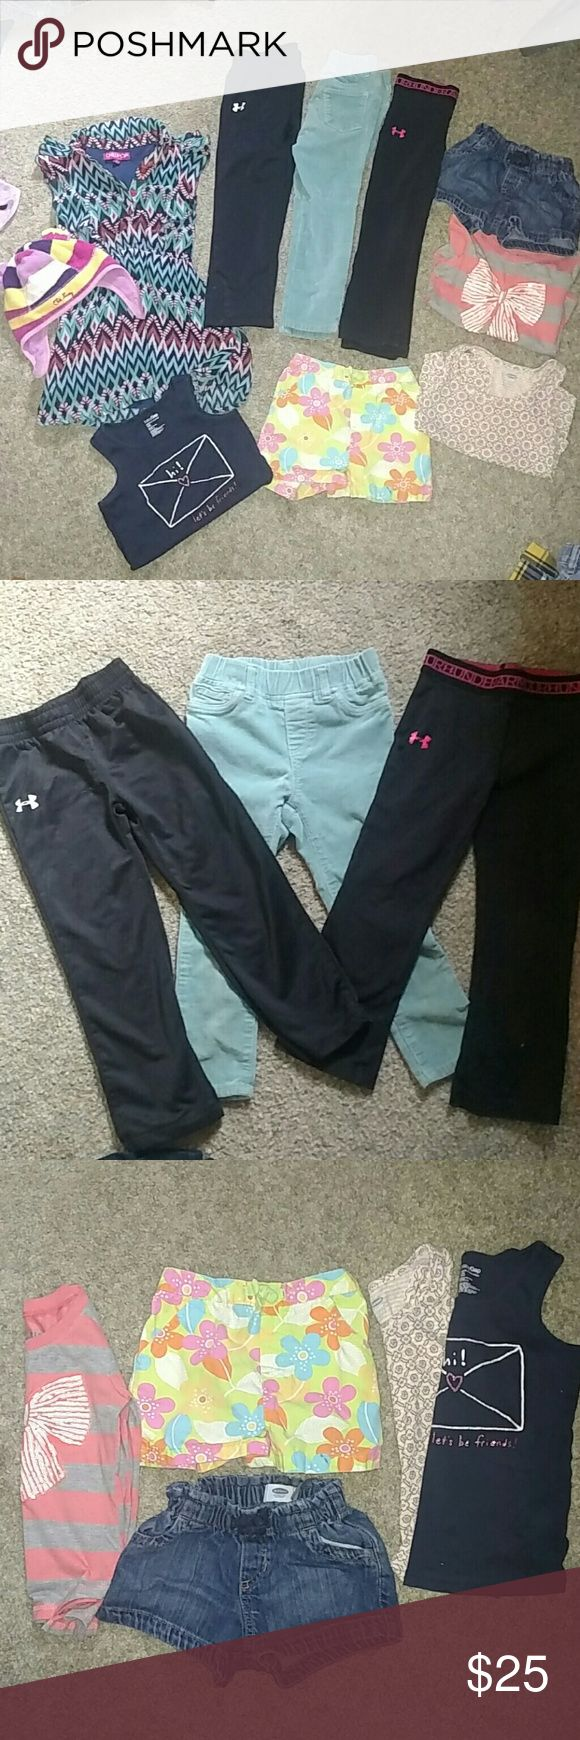 Size 3T all for 25$ 2 under armour pants, 1 baby gap pants, 1 old navy shorts, 1 circo shorts, 1 chillipop dress, 3 tops baby gap old navy and colette lilly and an old navy hat Under Armour Bottoms